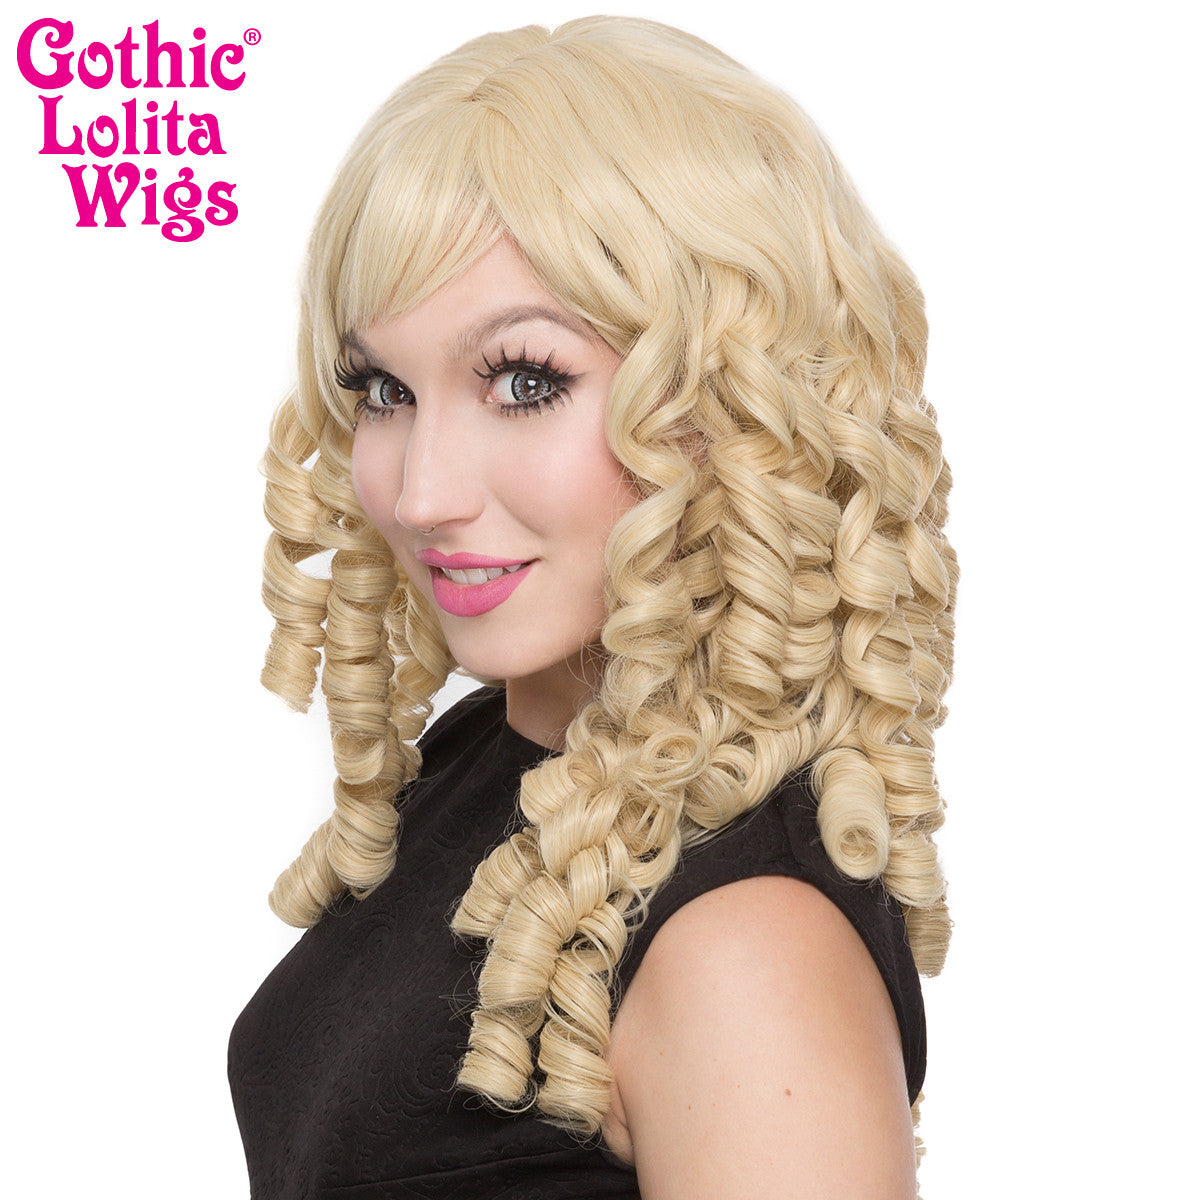 Gothic Lolita Wigs® <br> Ringlet Redux™ Collection - Blonde -00119